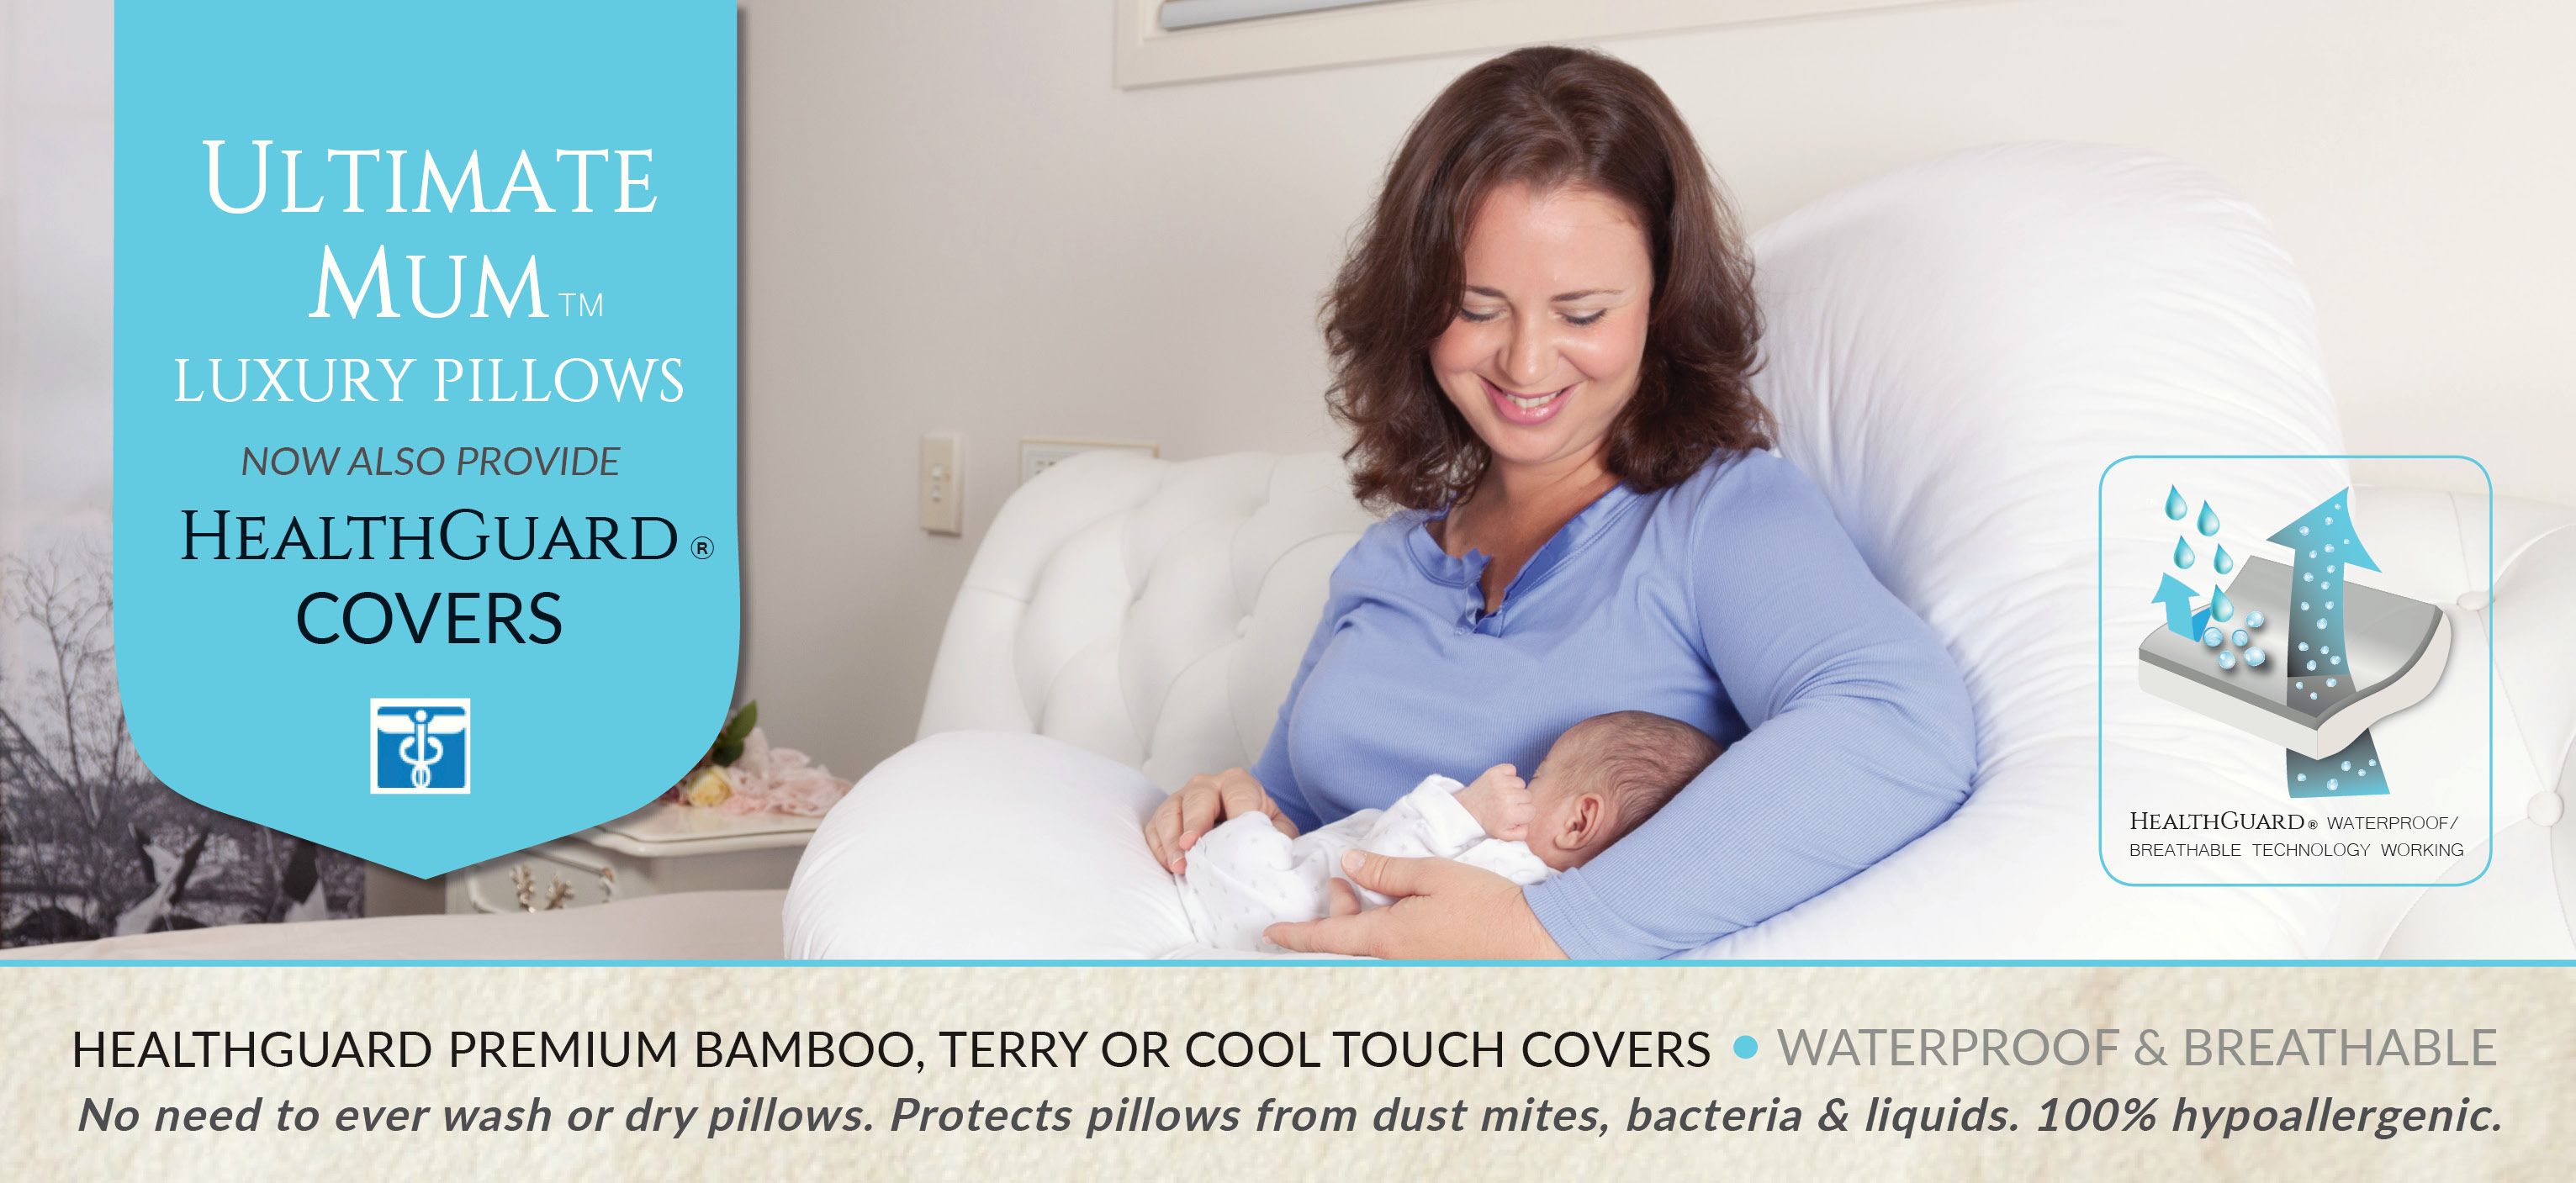 Ultimate Mum Luxury Pillows with HealthGuard